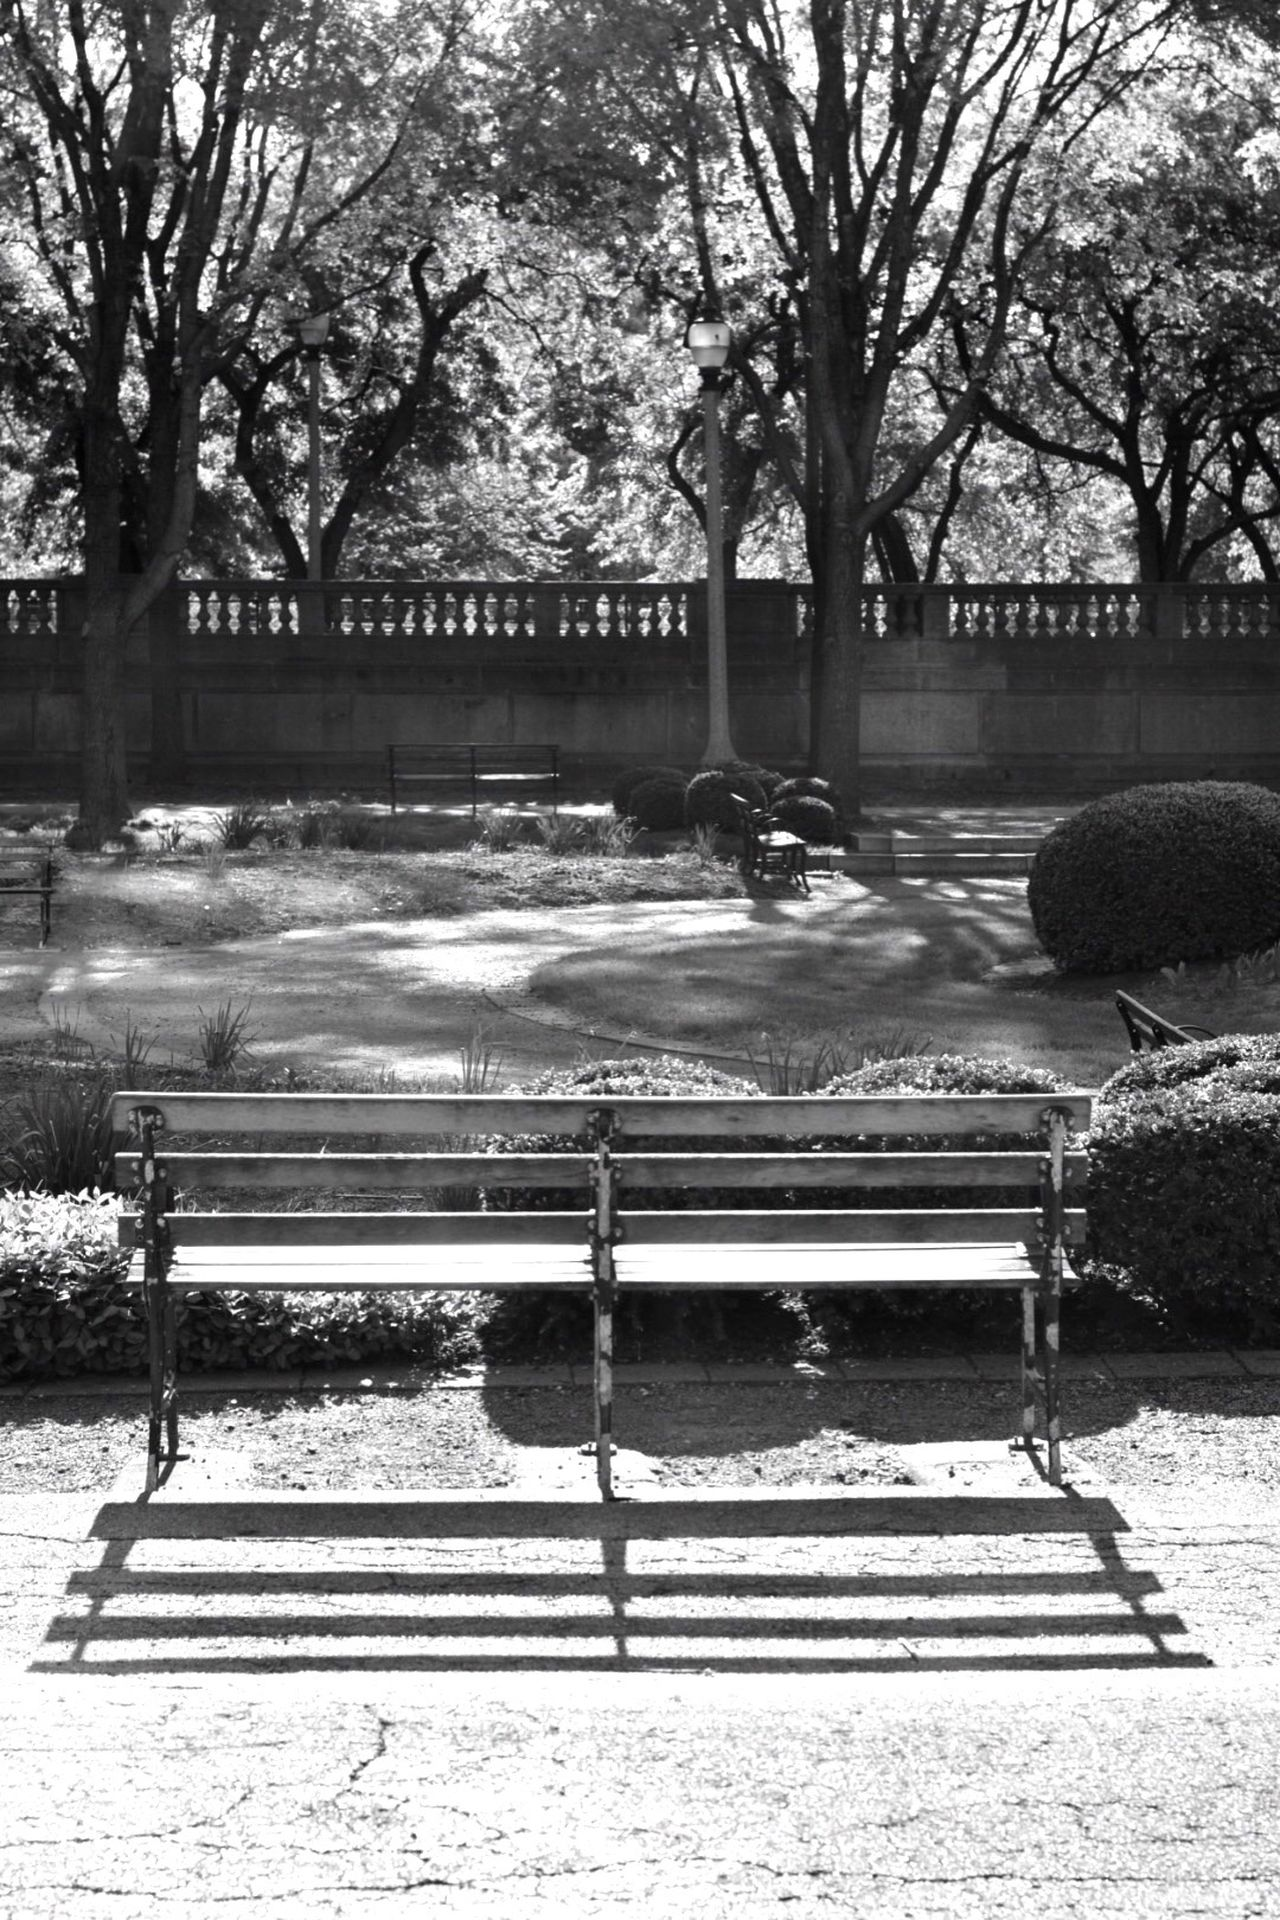 Bench in the Park Outdoors No People The Street Photographer - 2017 EyeEm Awards Blackandwhite Neighborhood Map EyeEmNewHere